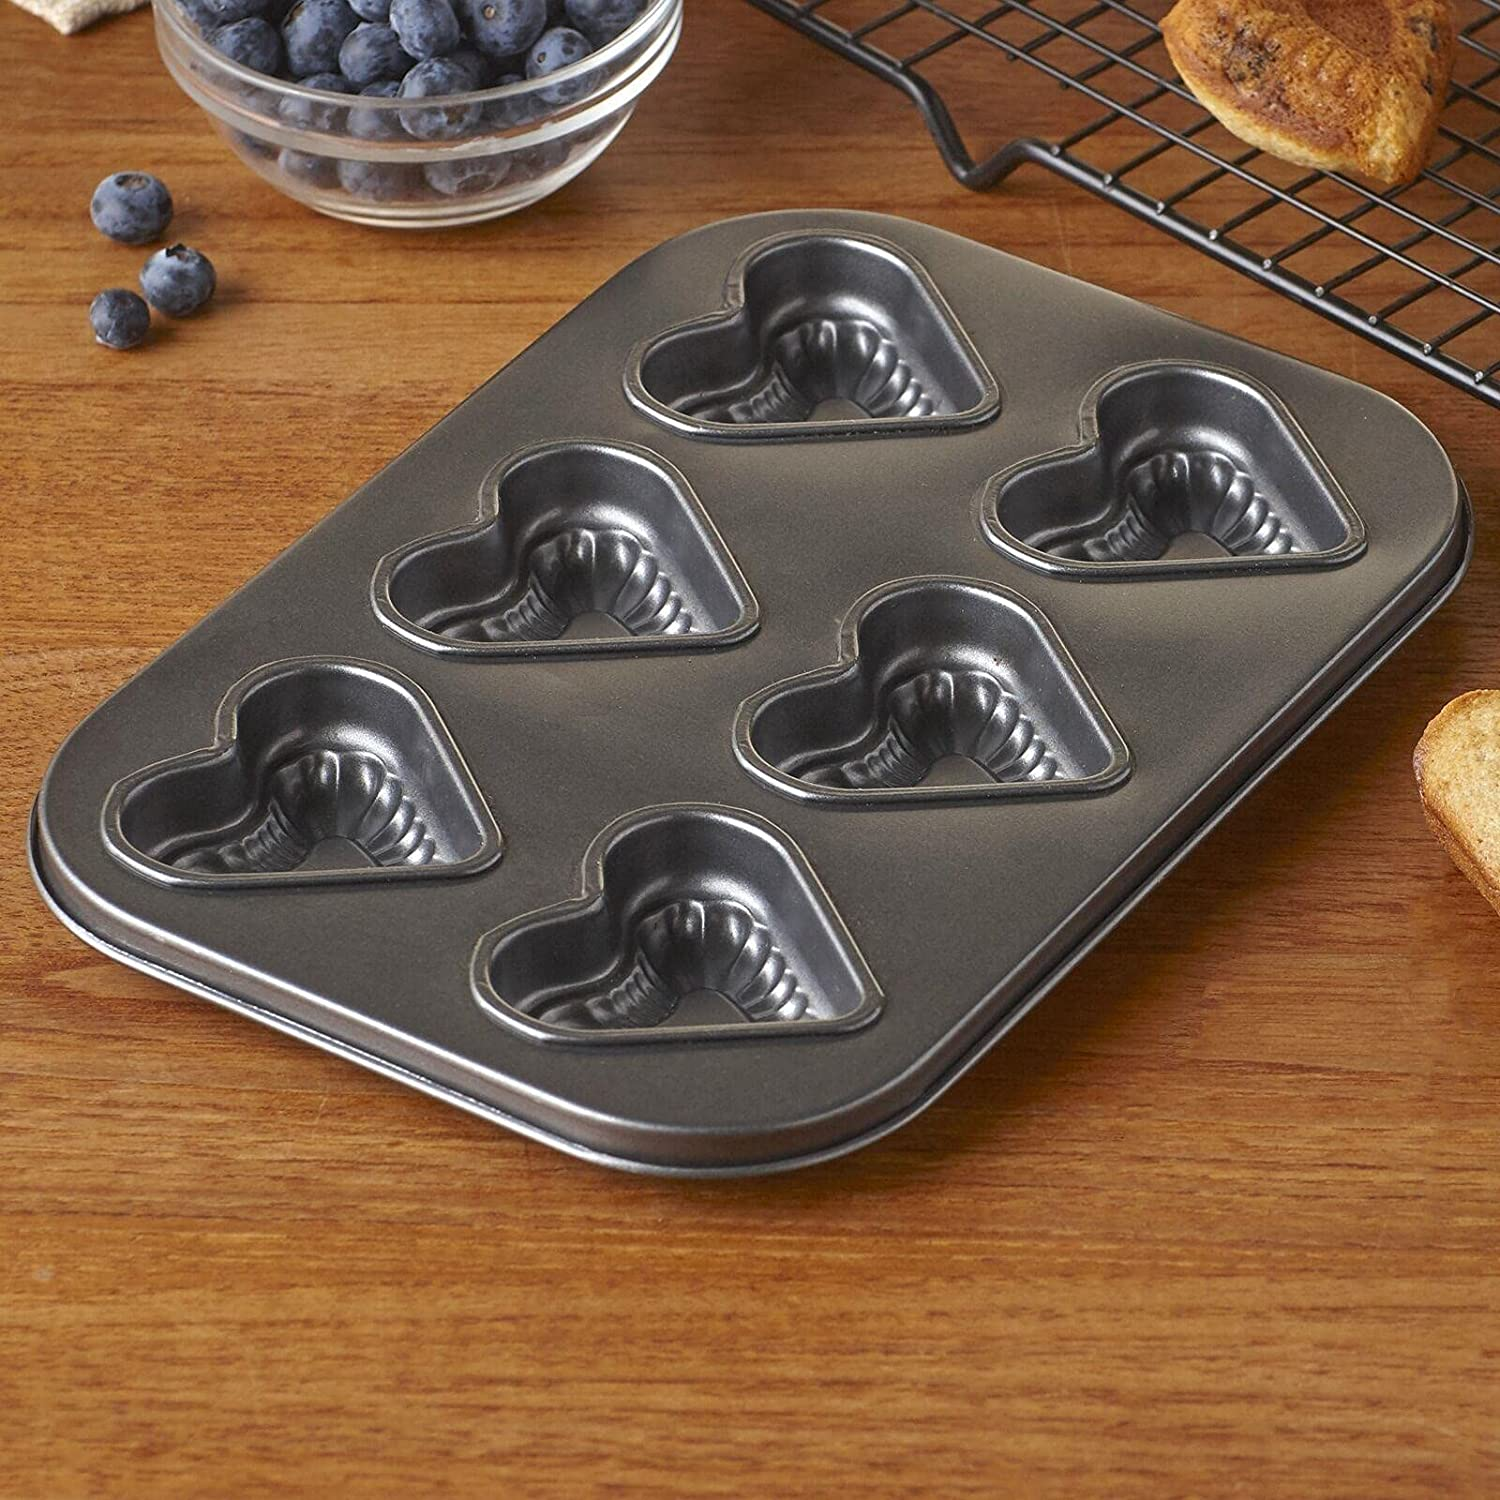 Baking Pans Colorado Springs Mall for Manufacturer OFFicial shop Desserts and Sweets Cooking room table Dining se